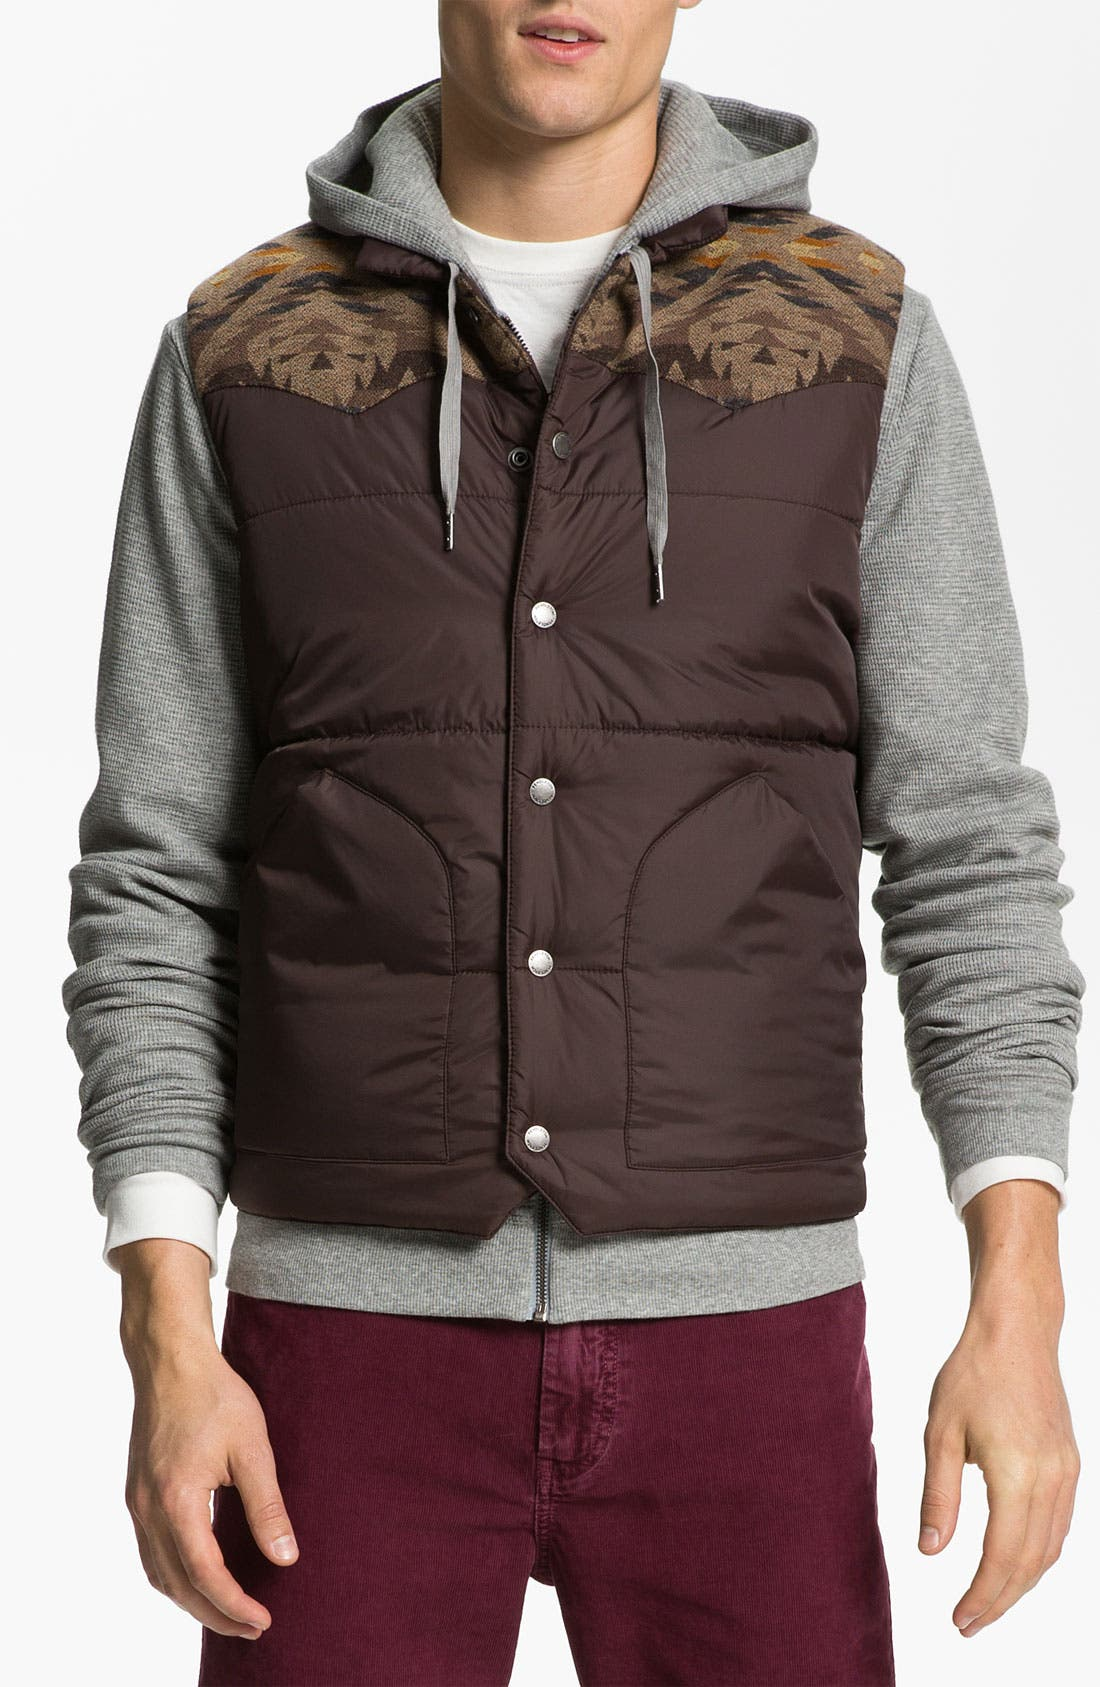 Alternate Image 1 Selected - Pendleton 'Cody' Vest